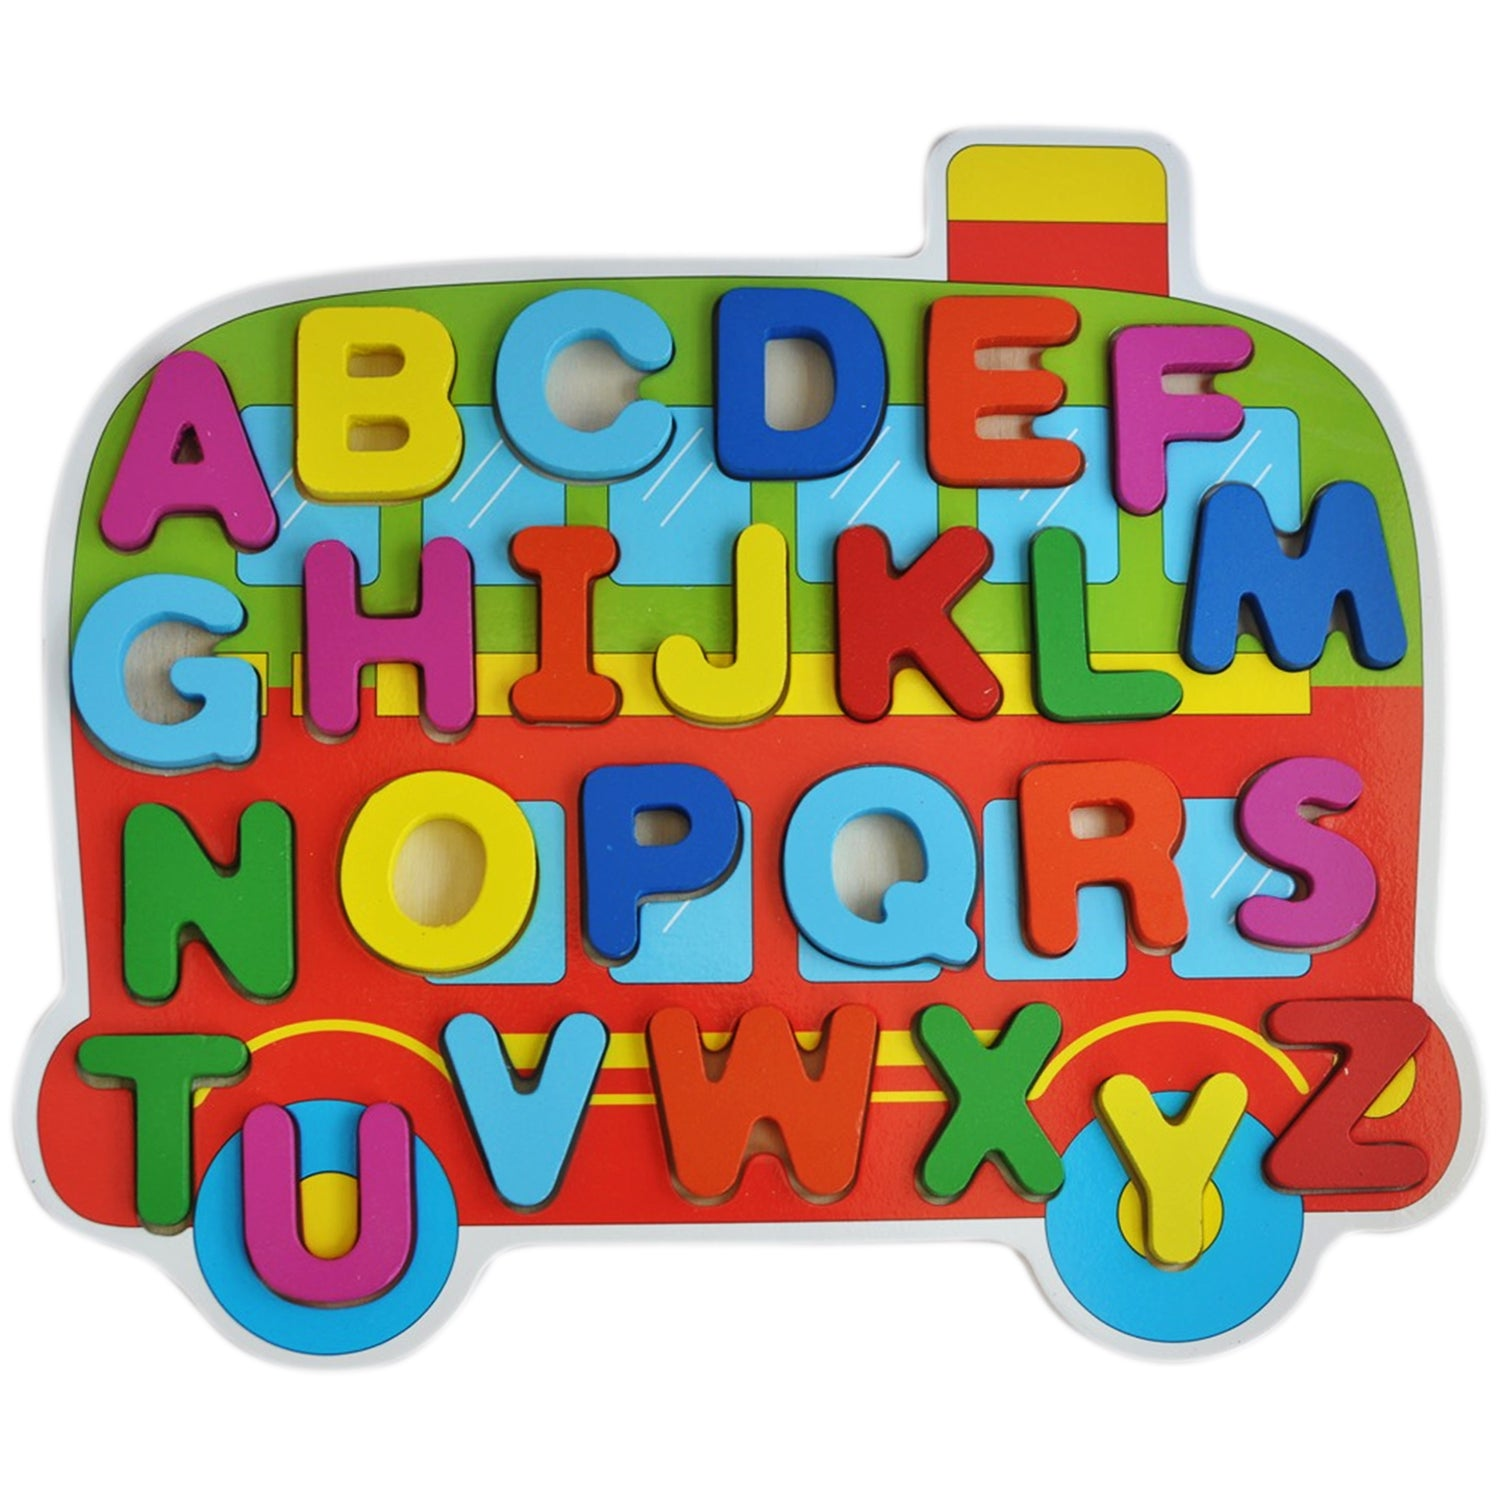 Trinkets & More Wooden ABC Learning Blocks